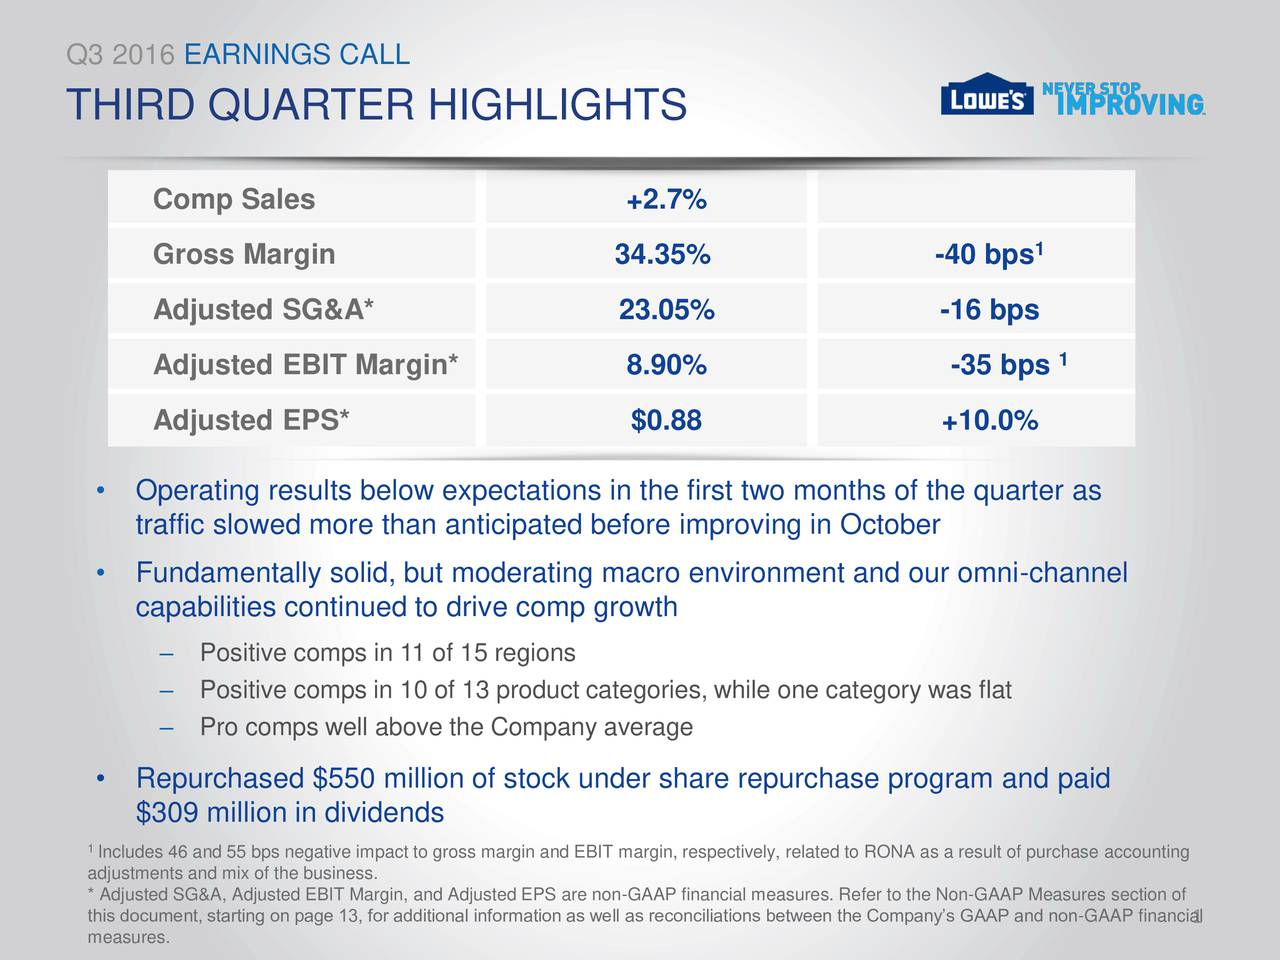 THIRD QUARTER HIGHLIGHTS Comp Sales +2.7% 1 Gross Margin 34.35% -40 bps Adjusted SG&A* 23.05% -16 bps Adjusted EBIT Margin* 8.90% -35 bps 1 Adjusted EPS* $0.88 +10.0% Operating results below expectations in the first two months of the quarter as traffic slowed more than anticipated before improving in October Fundamentally solid, but moderating macro environment and our omni-channel capabilities continued to drive comp growth Positive comps in 11 of 15 regions Positive comps in 10 of 13 product categories, while one category was flat Pro comps well above the Company average Repurchased $550 million of stock under share repurchase program and paid $309 million in dividends 1Includes 46 and 55 bps negative impact to gross margin and EBIT margin, respectively, related to RONA as a result of purchase accounting adjustments and mix of the business. this document, starting on page 13, for additional information as well as reconciliations1between the Companys GAAP and non-GAAP financial measures.